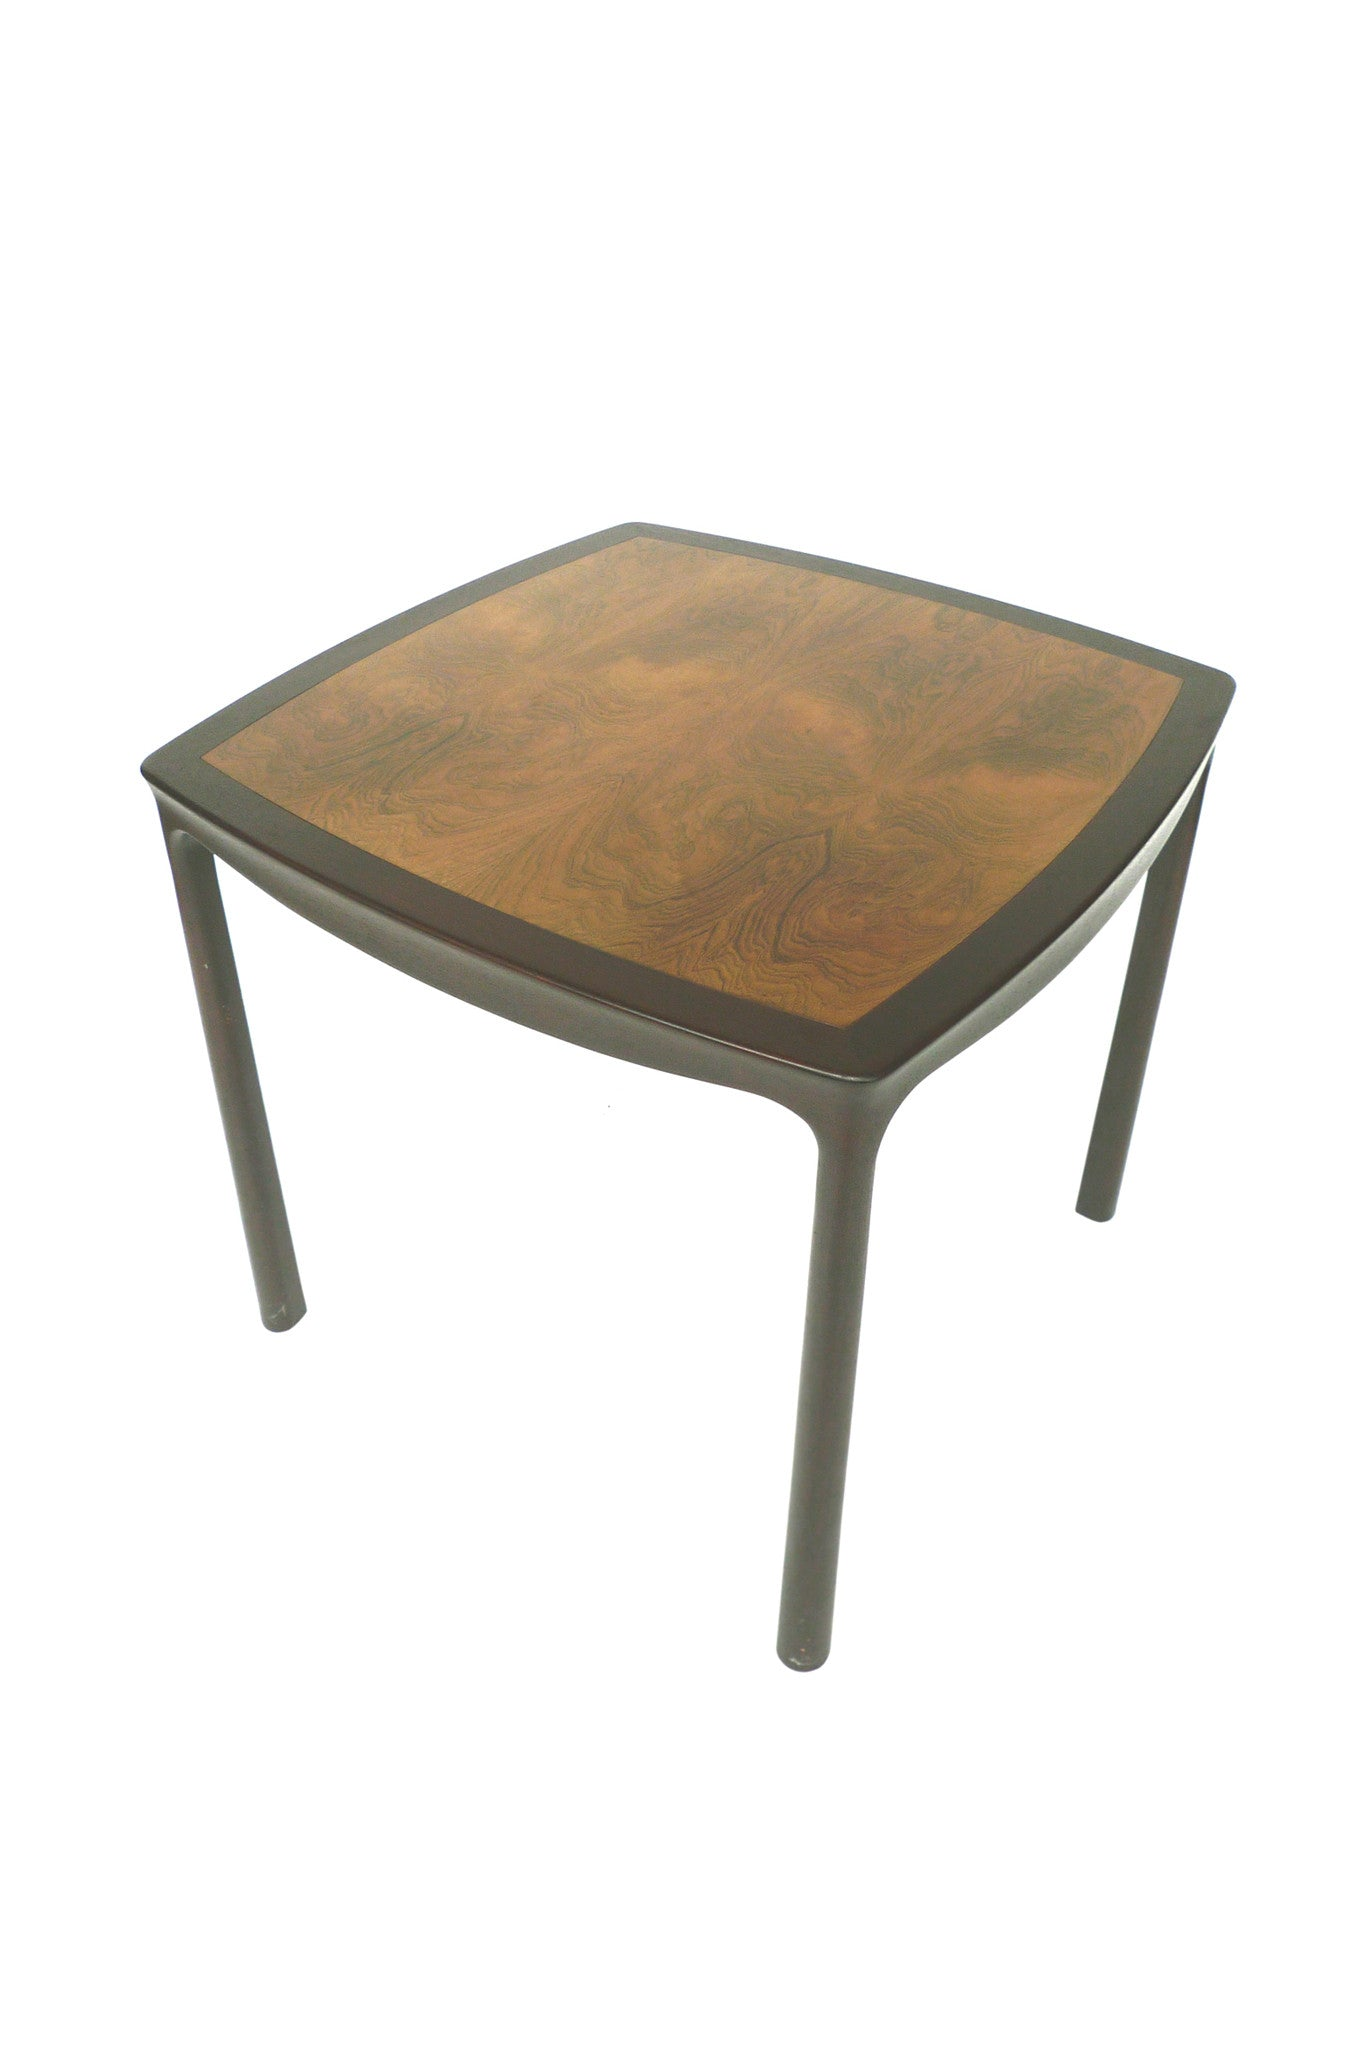 72612416a768 Midcentury Edward Wormley Game Table by Dunbar - Cafiero Select Home